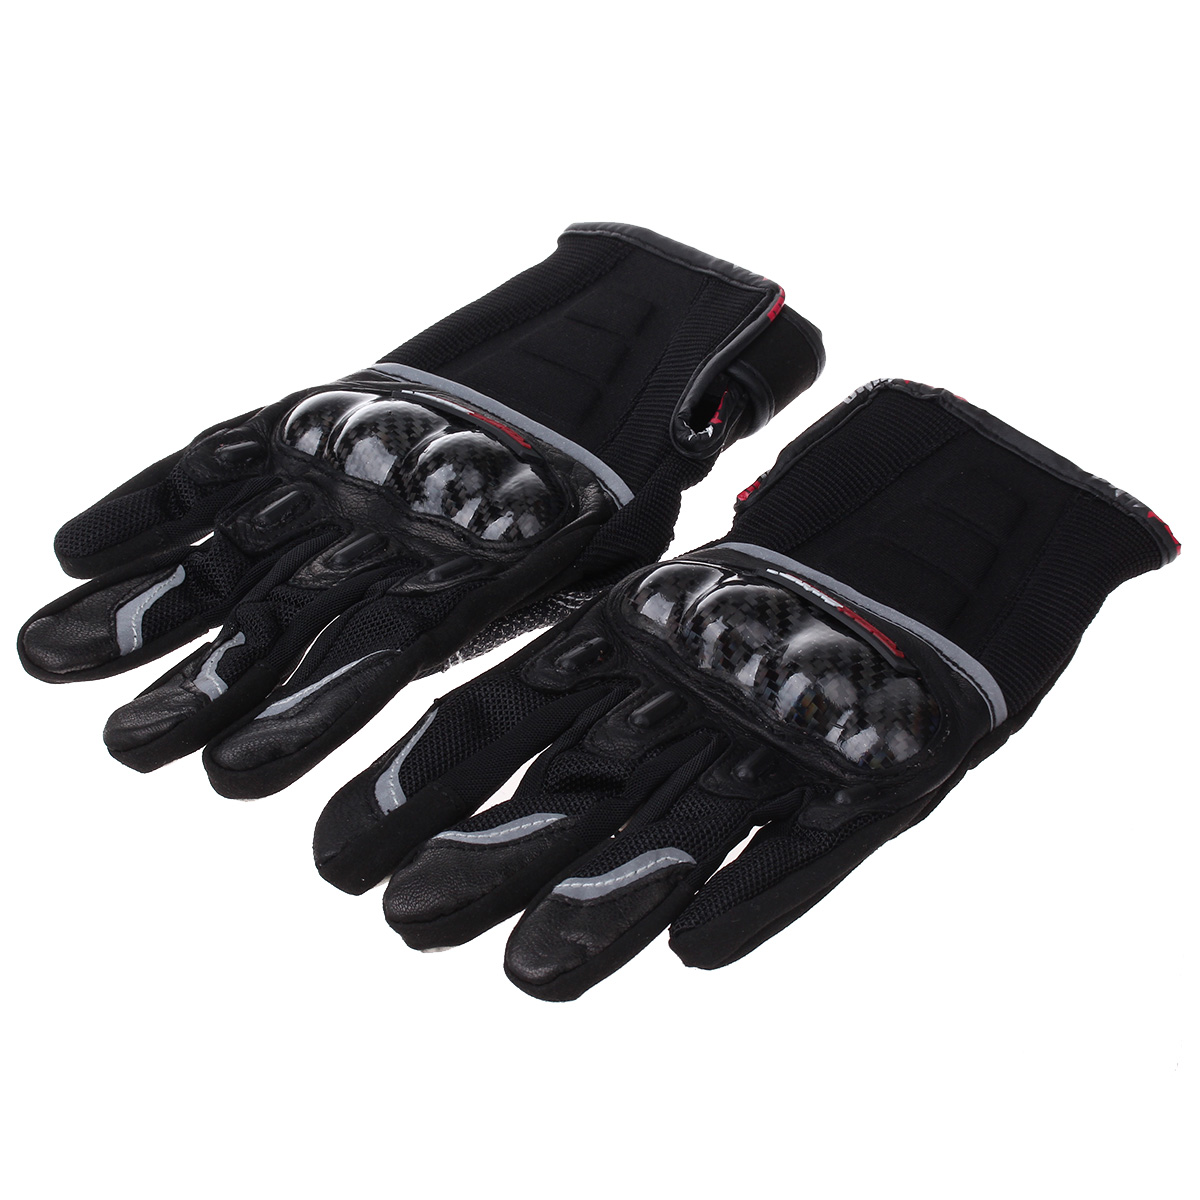 2015 Promotion Special Offer Nylon Adult Unisex Luva Guantes Gym Cool Multi-function Refers To All Warm Bicycle Gloves (l) - +